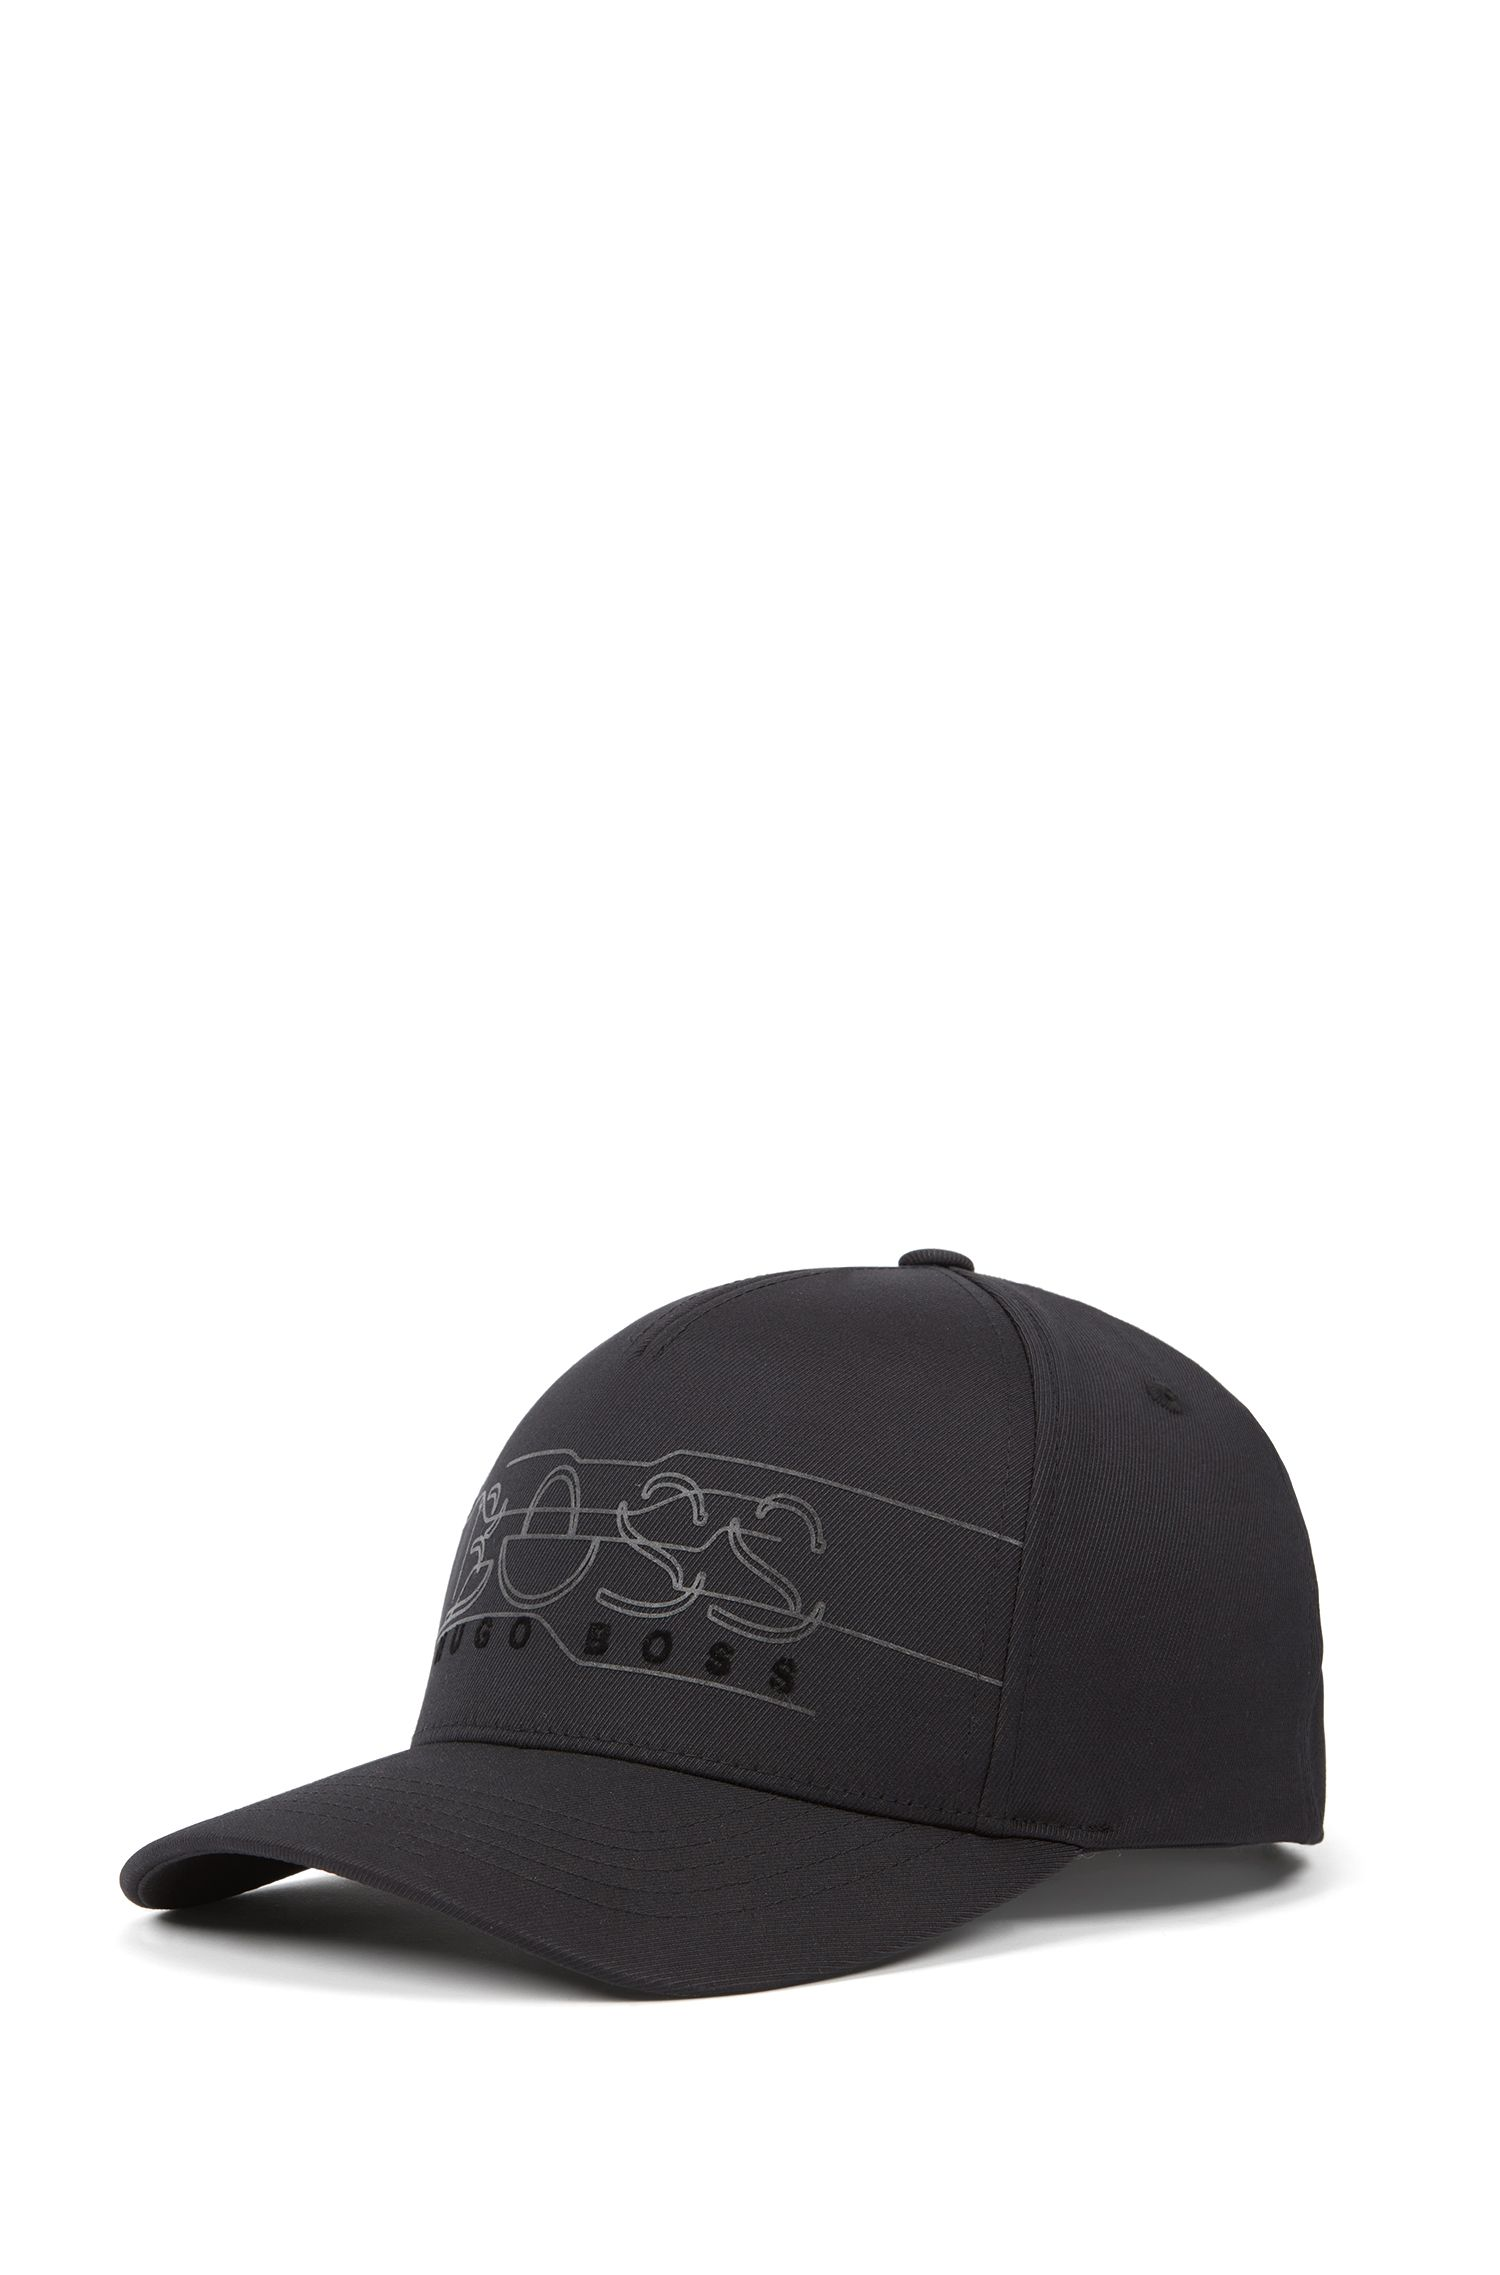 Double-twill cap with reflective logo print, Black